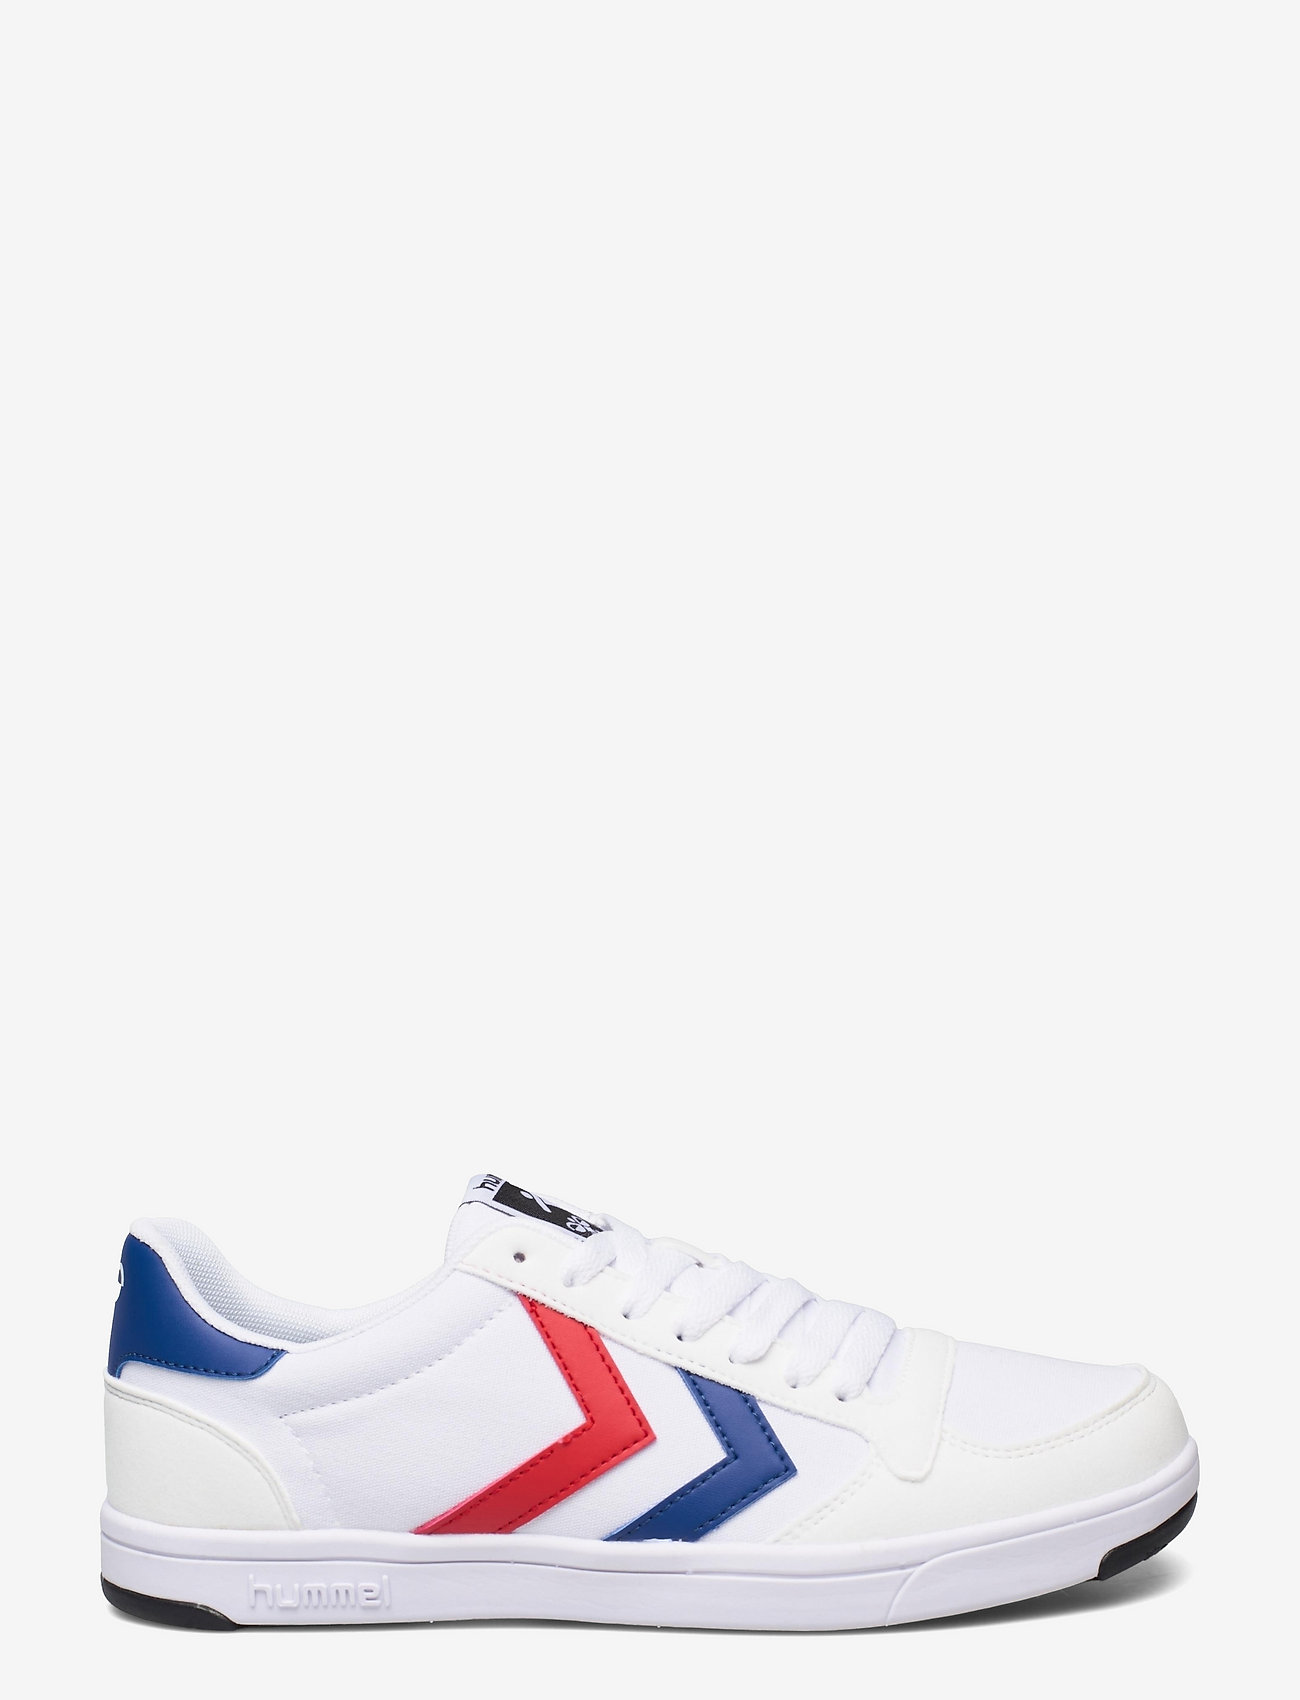 Hummel - STADIL LIGHT CANVAS - laag sneakers - white/blue/red - 0